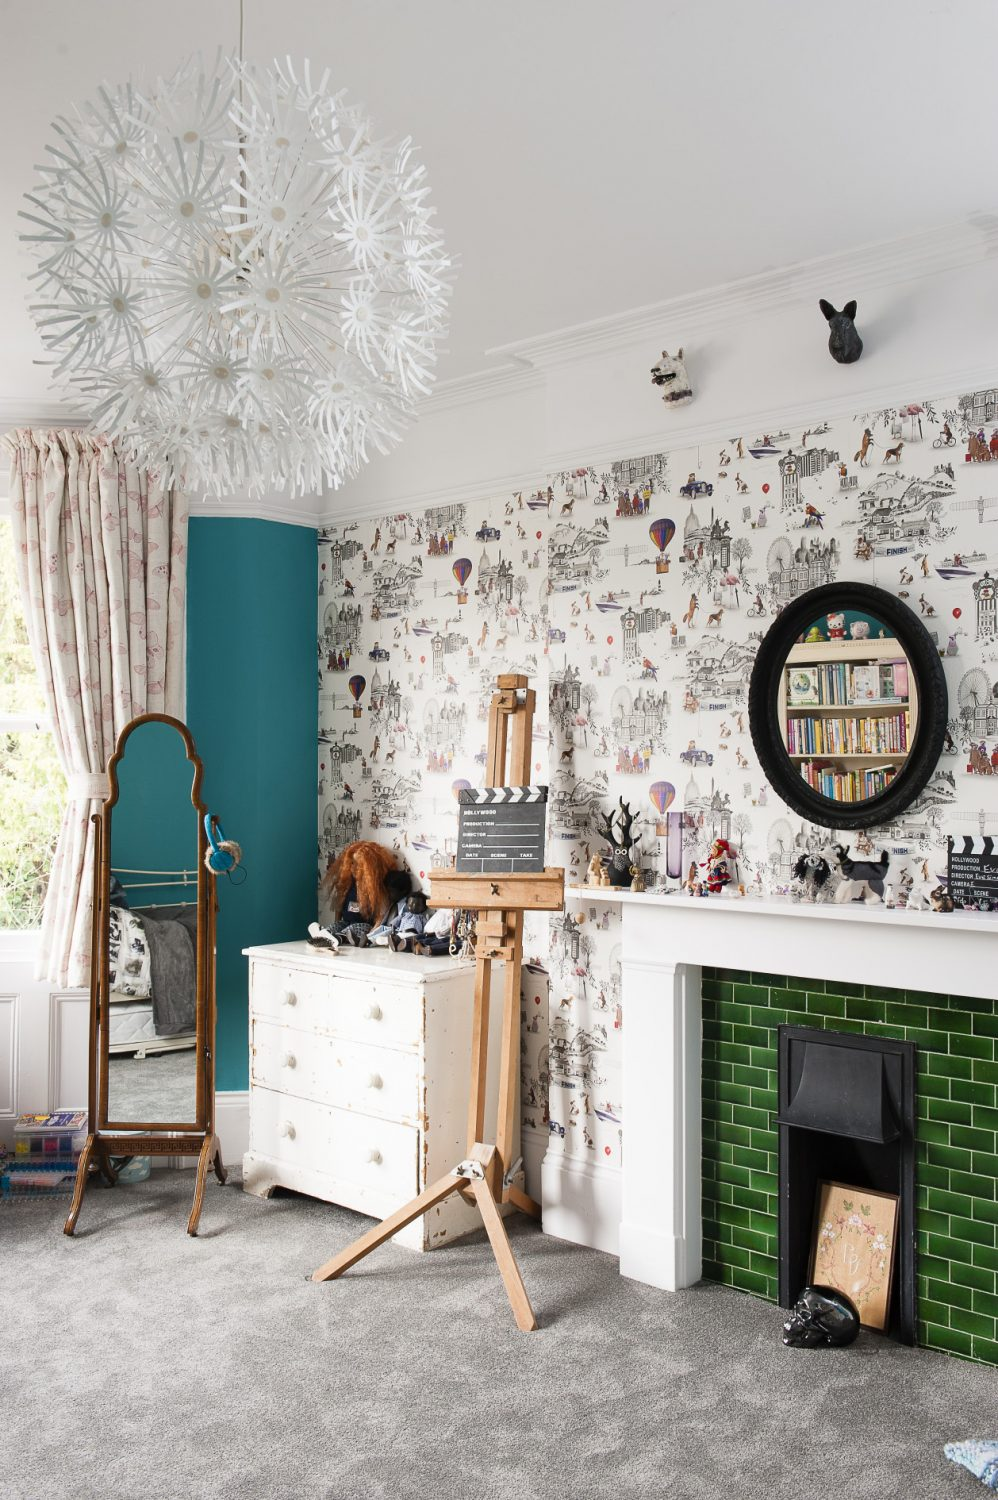 Catherine's daughter's room features a wall and chimney breast papered in lighthearted Meerkat wallpaper